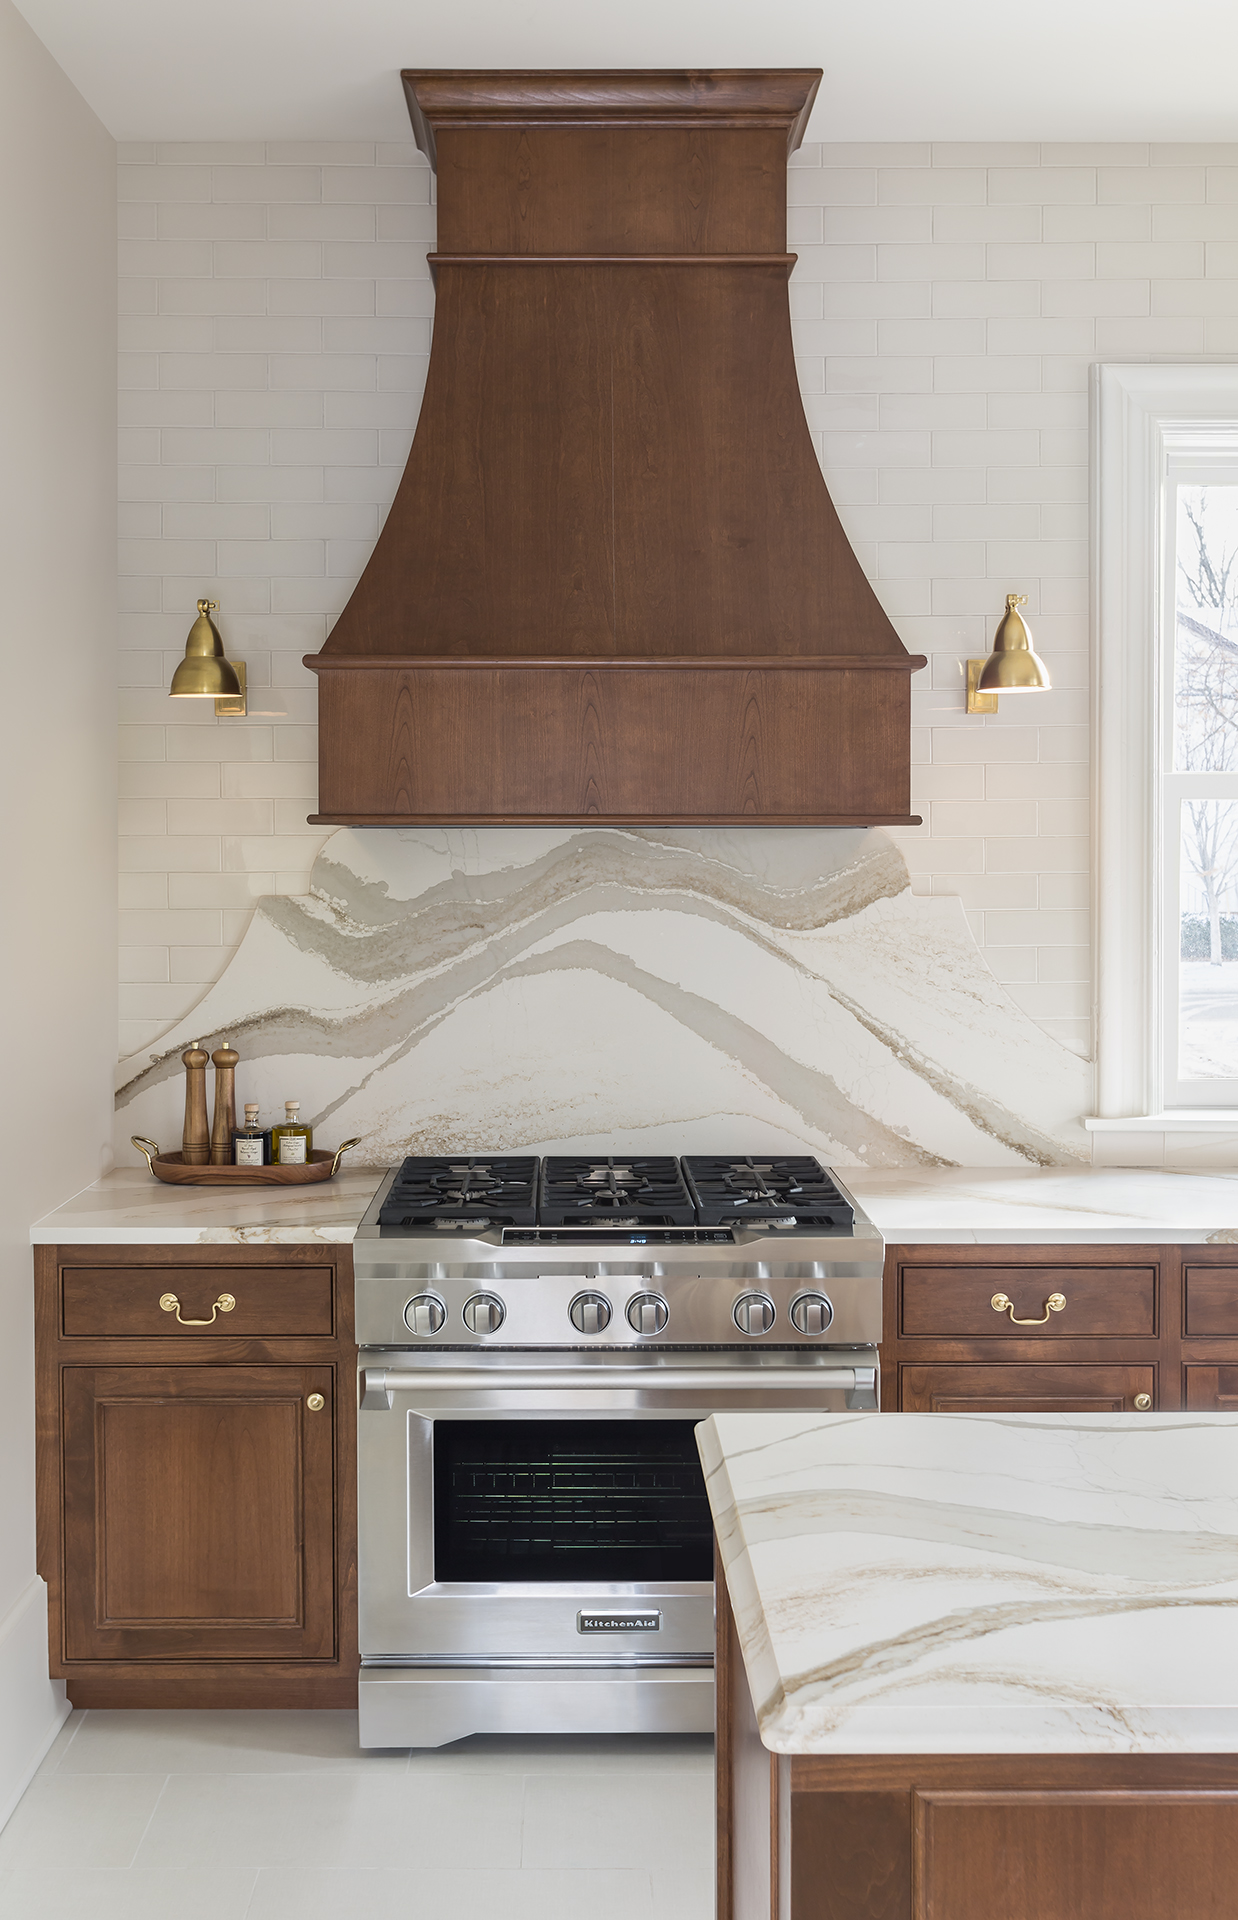 Traditional details such as inset doors with a beaded frame blend with more contemporary elements to create a kitchen that feels classic, unique, and unexpected all at the same time.